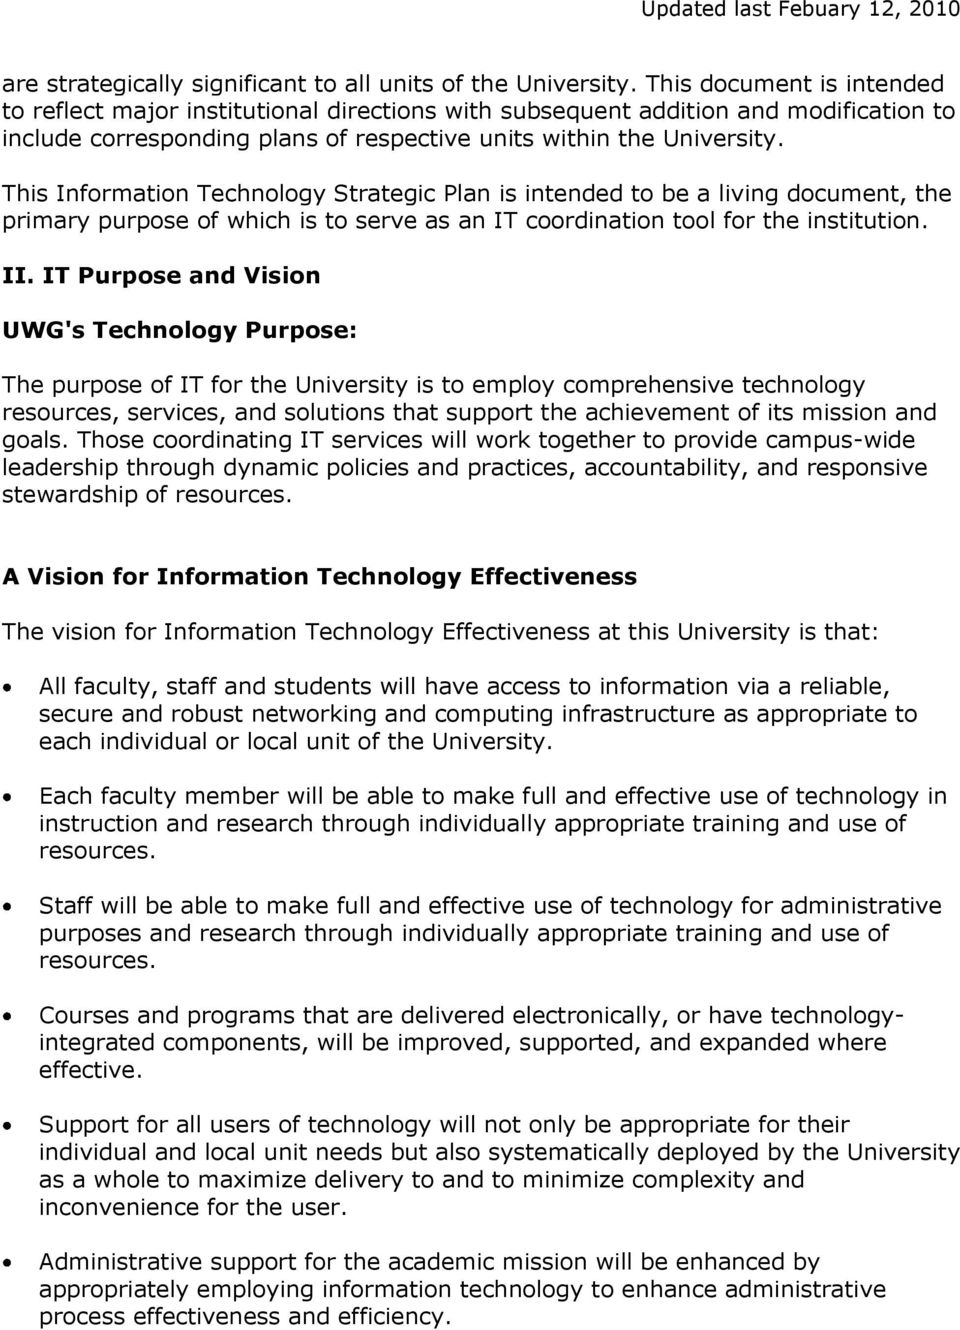 This Information Technology Strategic Plan is intended to be a living document, the primary purpose of which is to serve as an IT coordination tool for the institution. II.